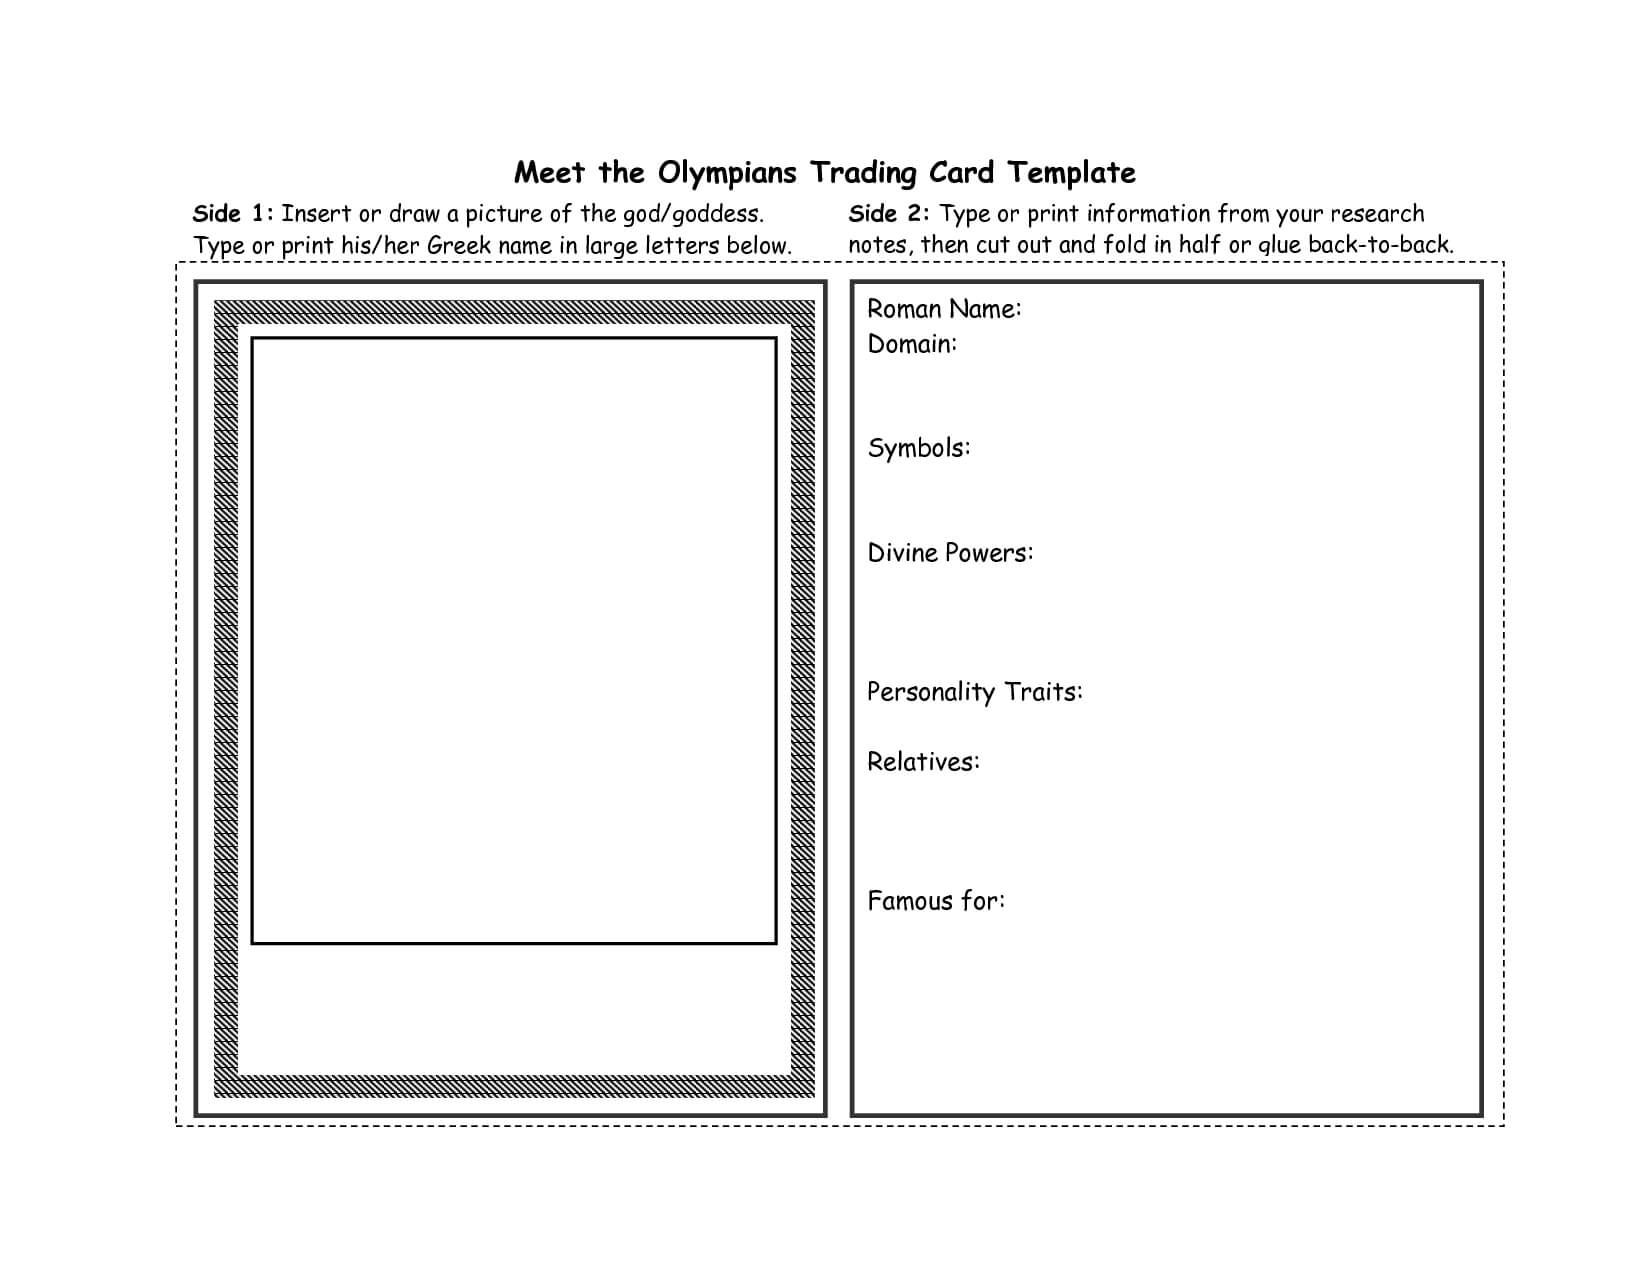 Best Photos Of Trading Card Template For Word - Trading Card in Free Sports Card Template